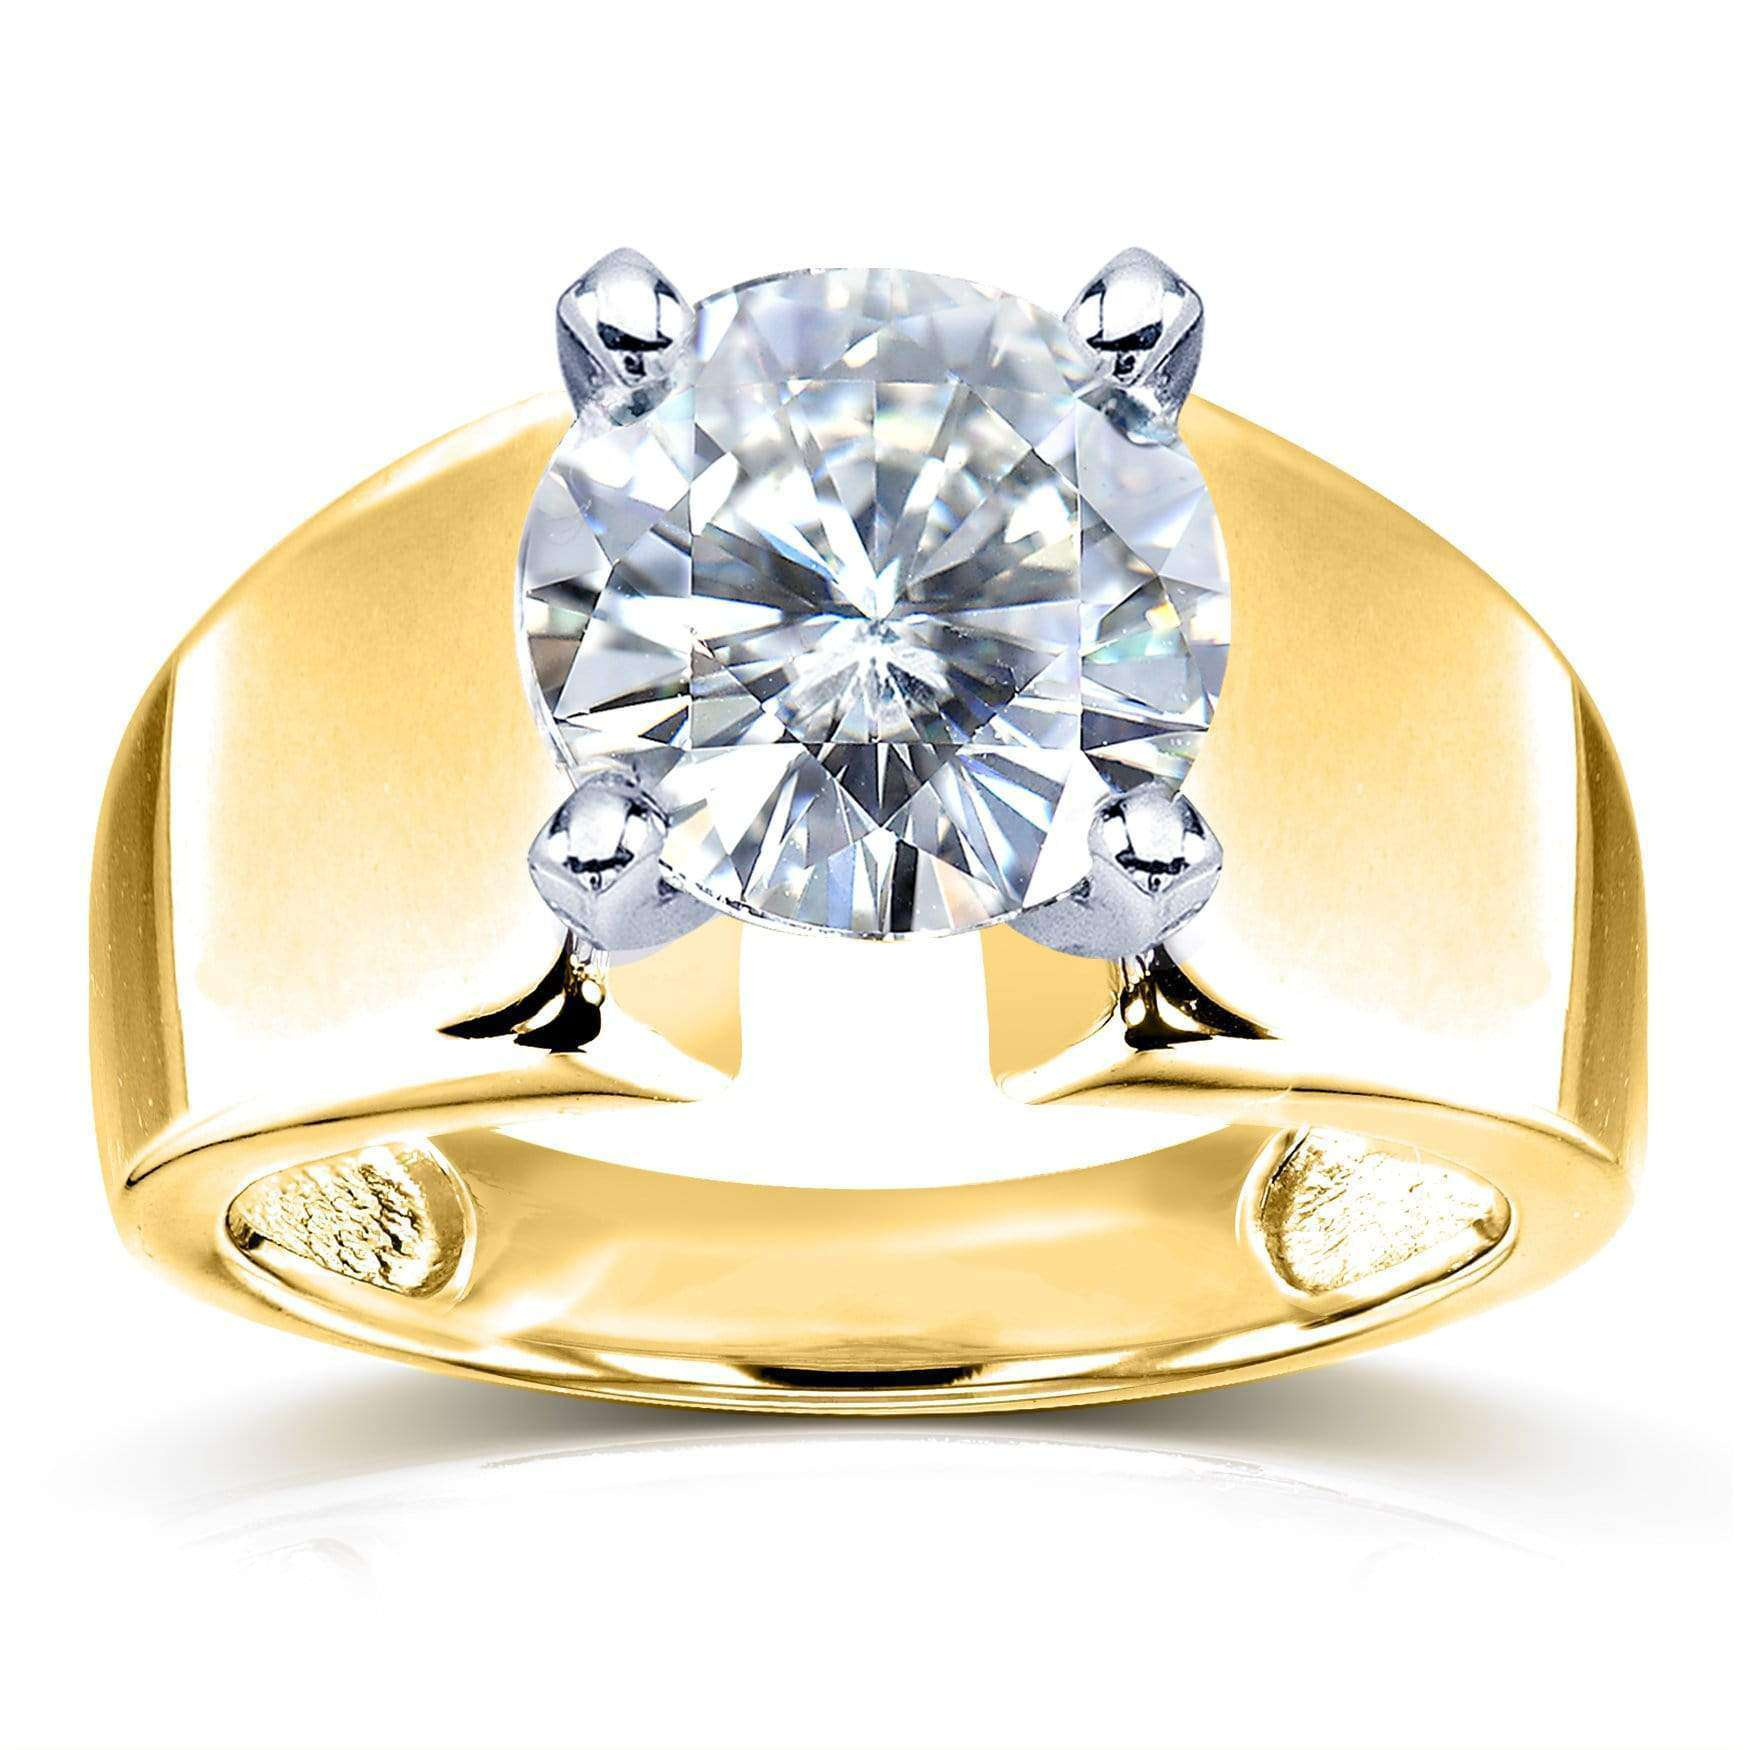 Top Wide Shank Round Brilliant Moissanite Solitaire Engagement Ring 3 Carat 14k Yellow Gold (FG/VS) - 4.5